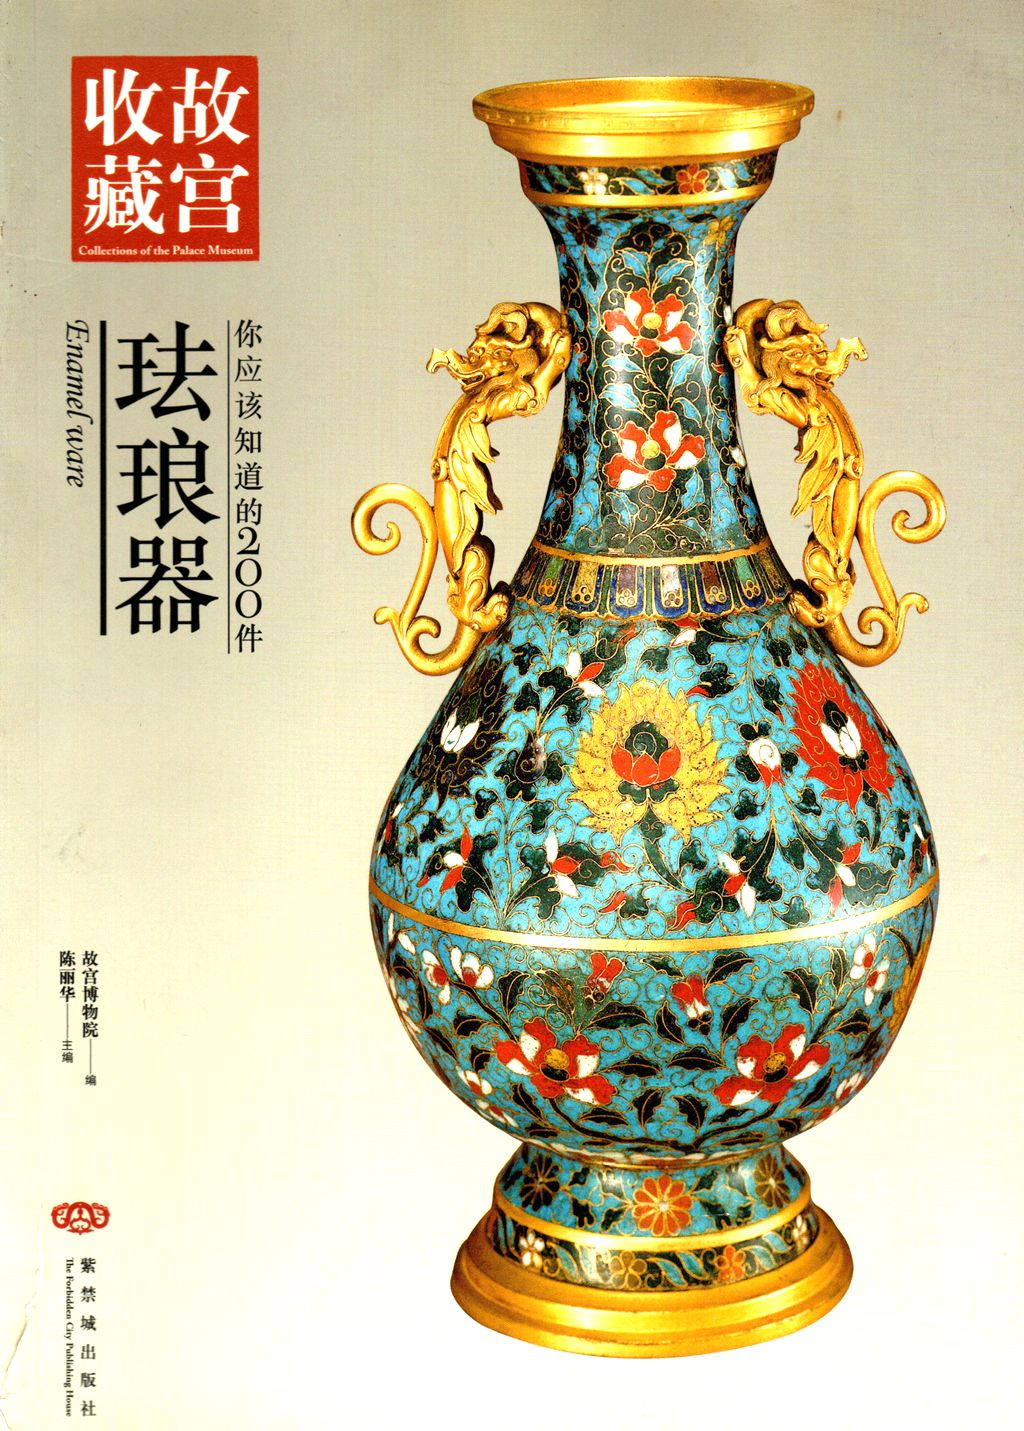 F8048, China Enamel Ware---Collection of the Palace Museum (2008)